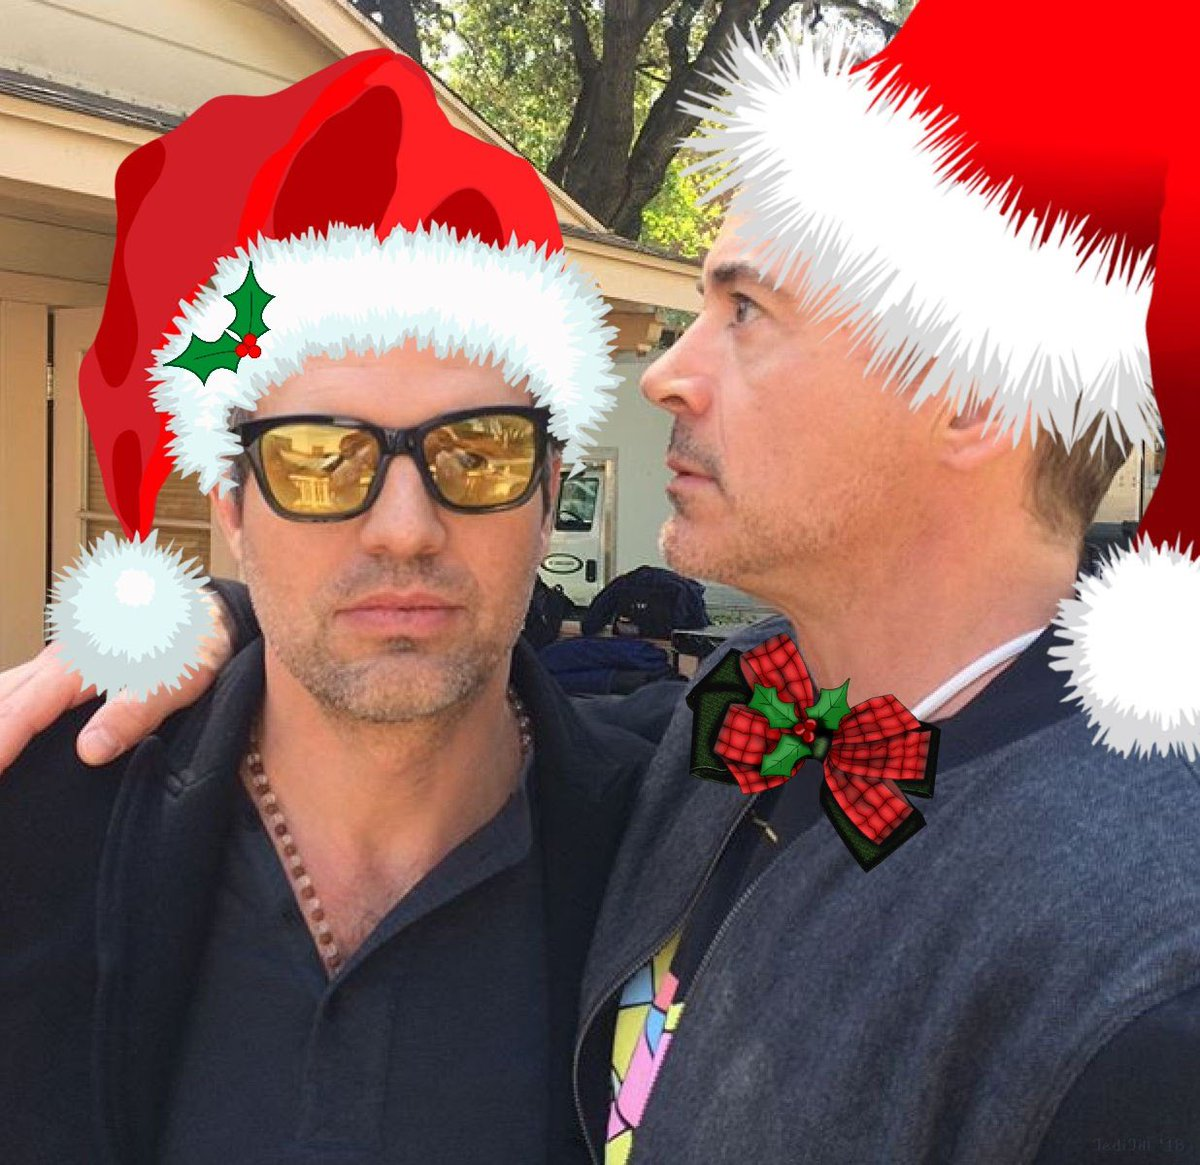 Have a Cool Yule! 🎅💚❤️ #MarkRuffalo #RobertDowneyJr #ScienceBros #ScienceBrosForever 💚❤️ #MerryChristmas #HappyHolidays